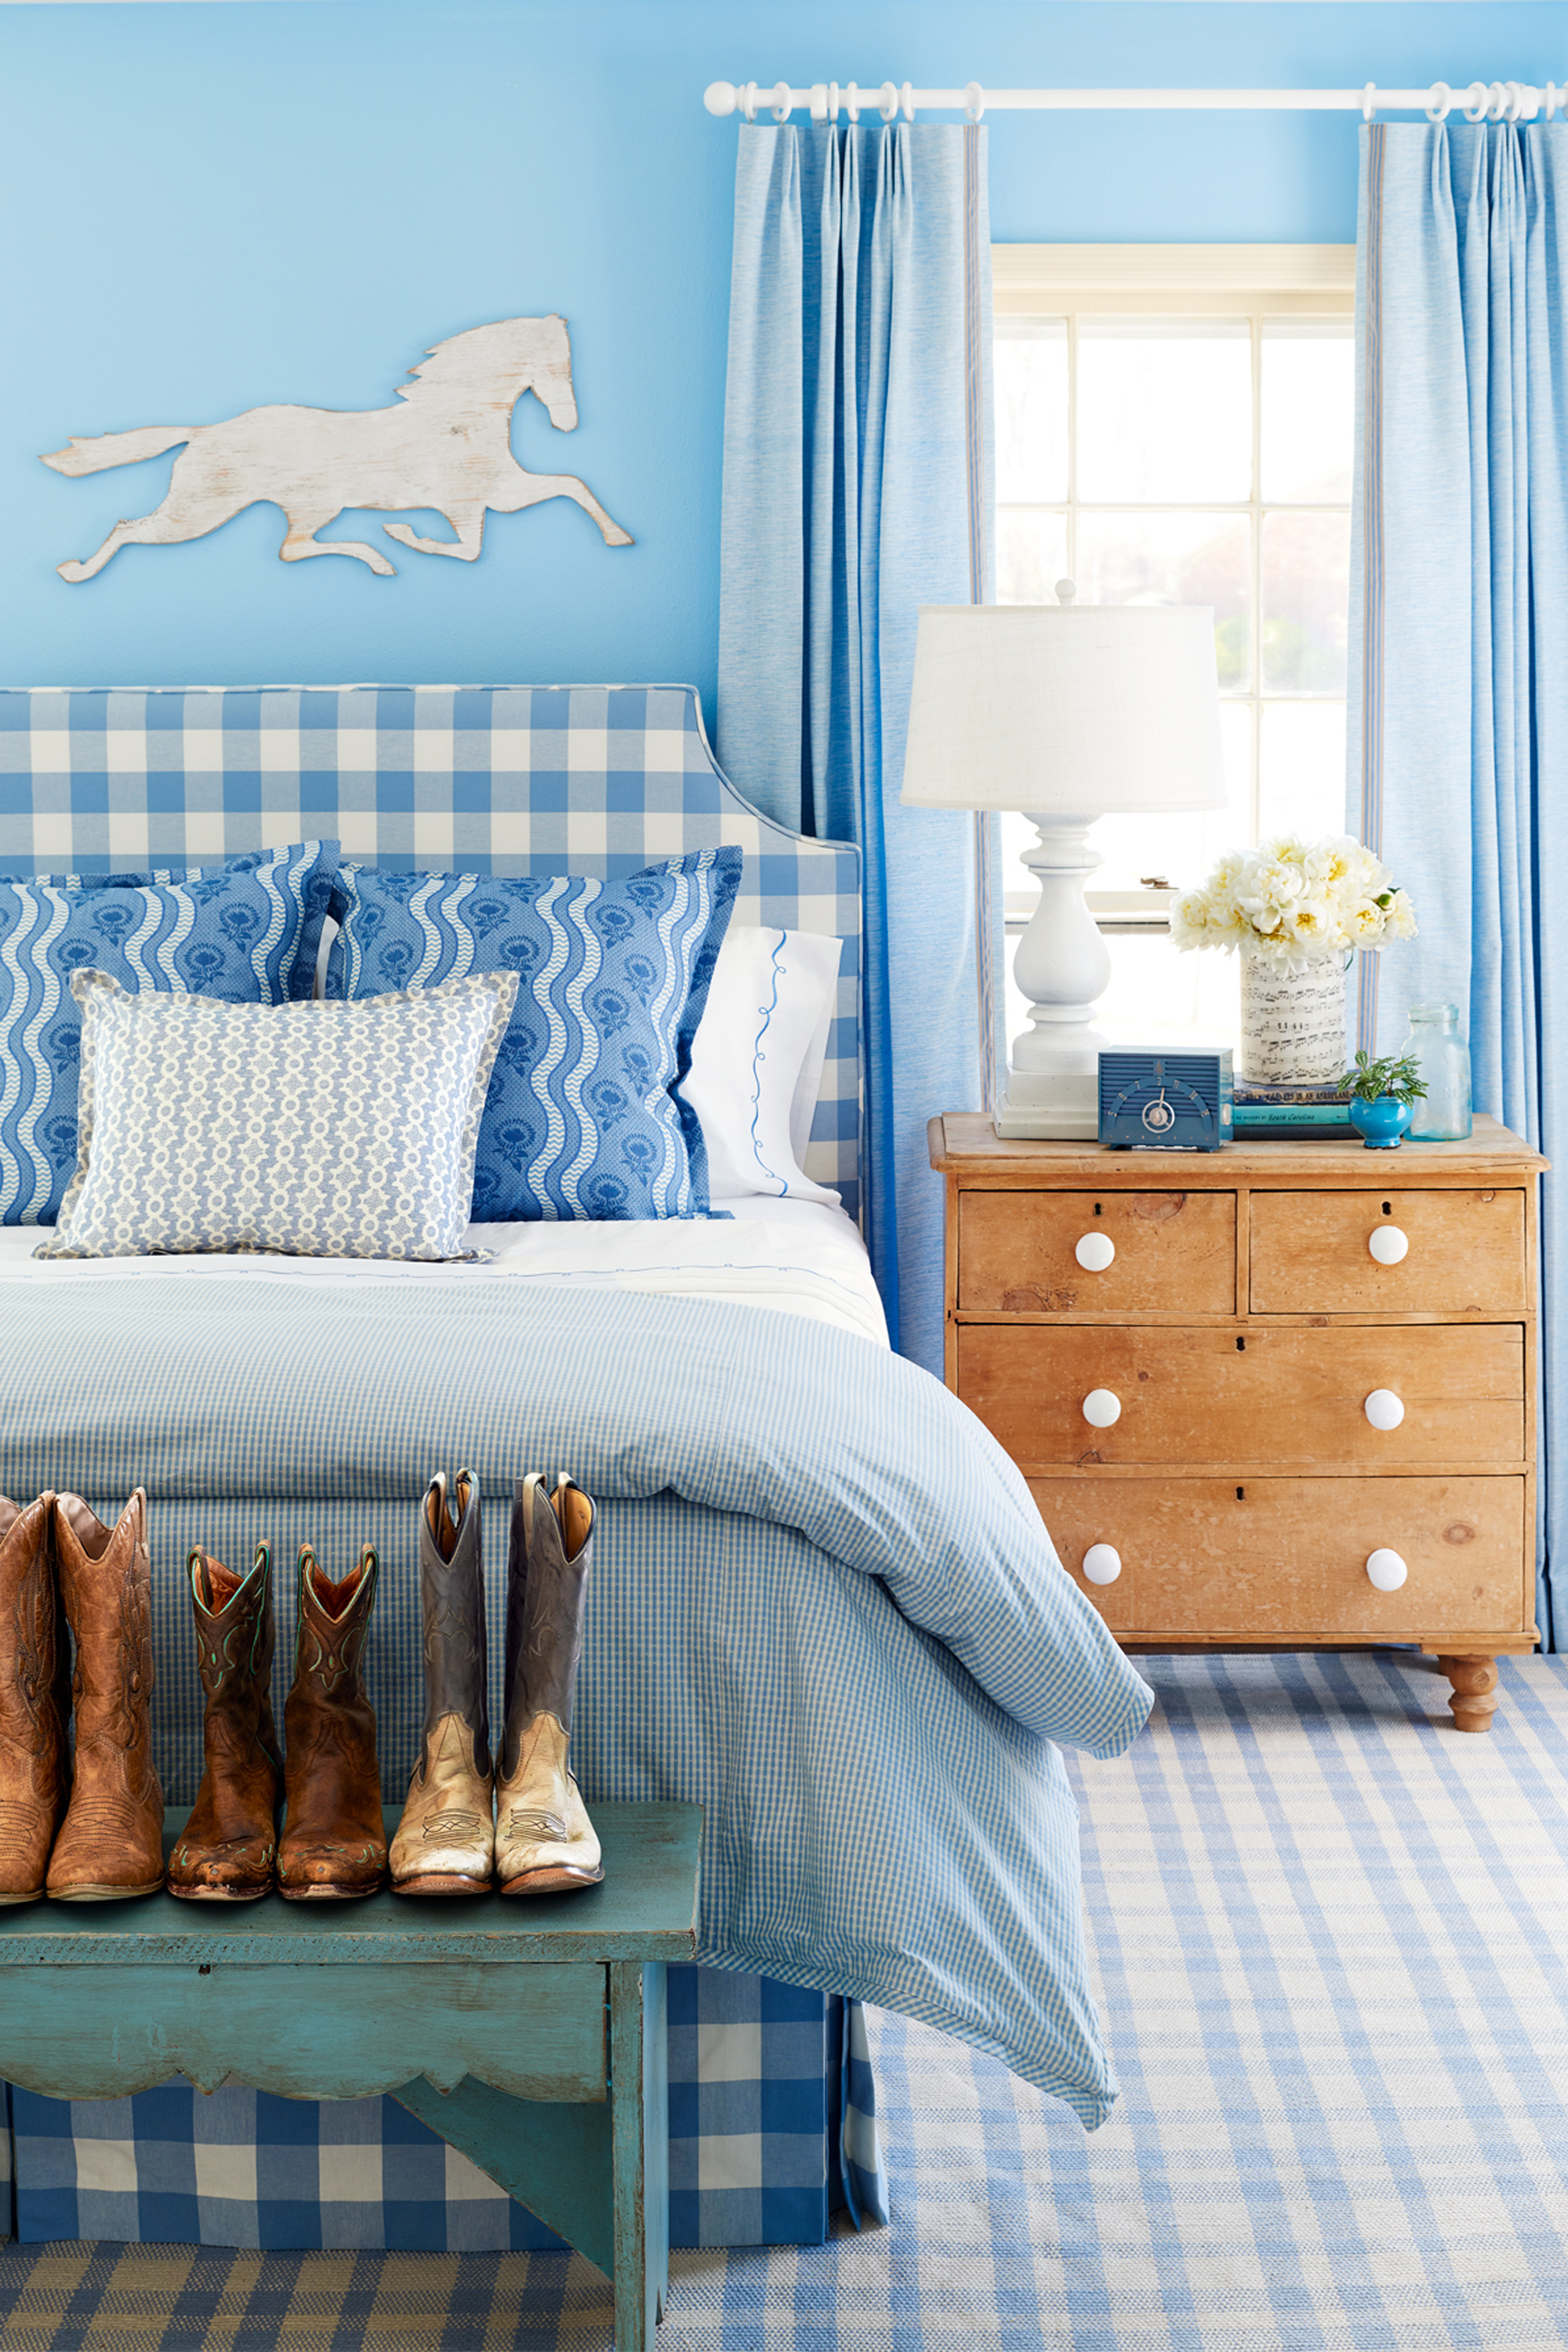 bedroom design blue.  25 Best Blue Rooms Decorating Ideas for Walls and Home Decor